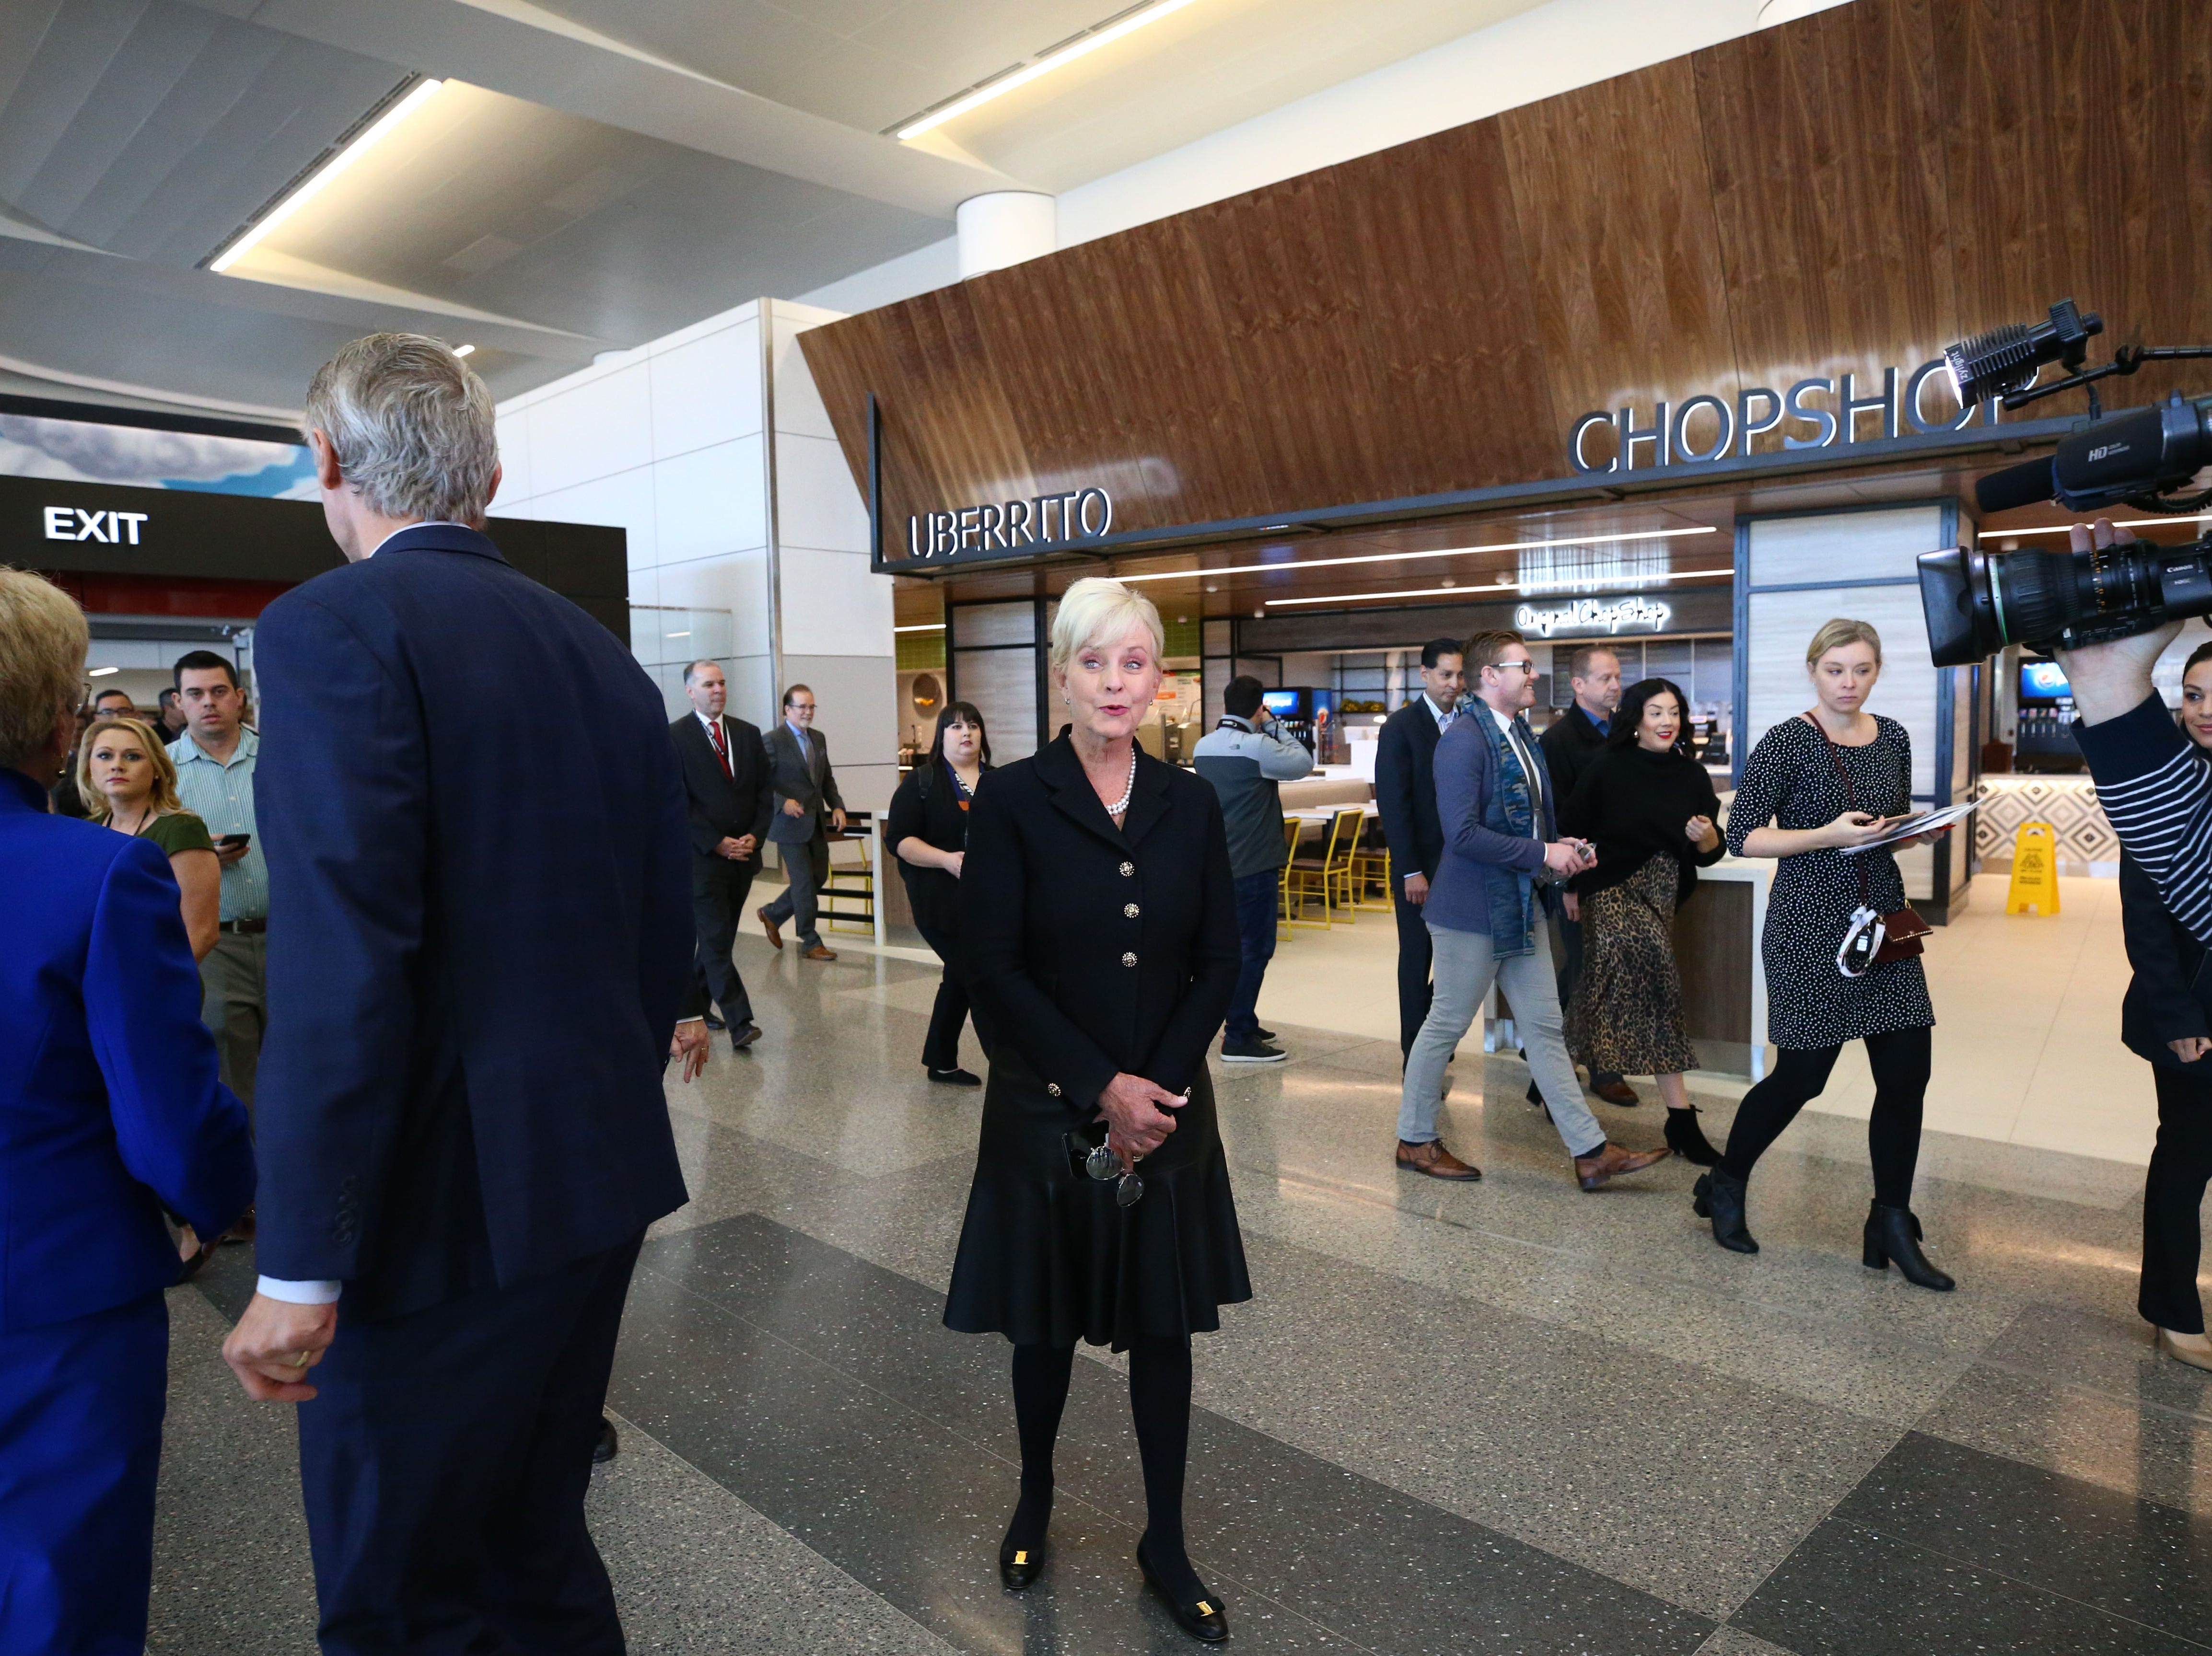 Cindy McCain gets her first look at the John S. McCain III Terminal 3, South Concourse during ceremonies on Monday, Jan. 7, 2019 at Phoenix Sky Harbor International Airport.